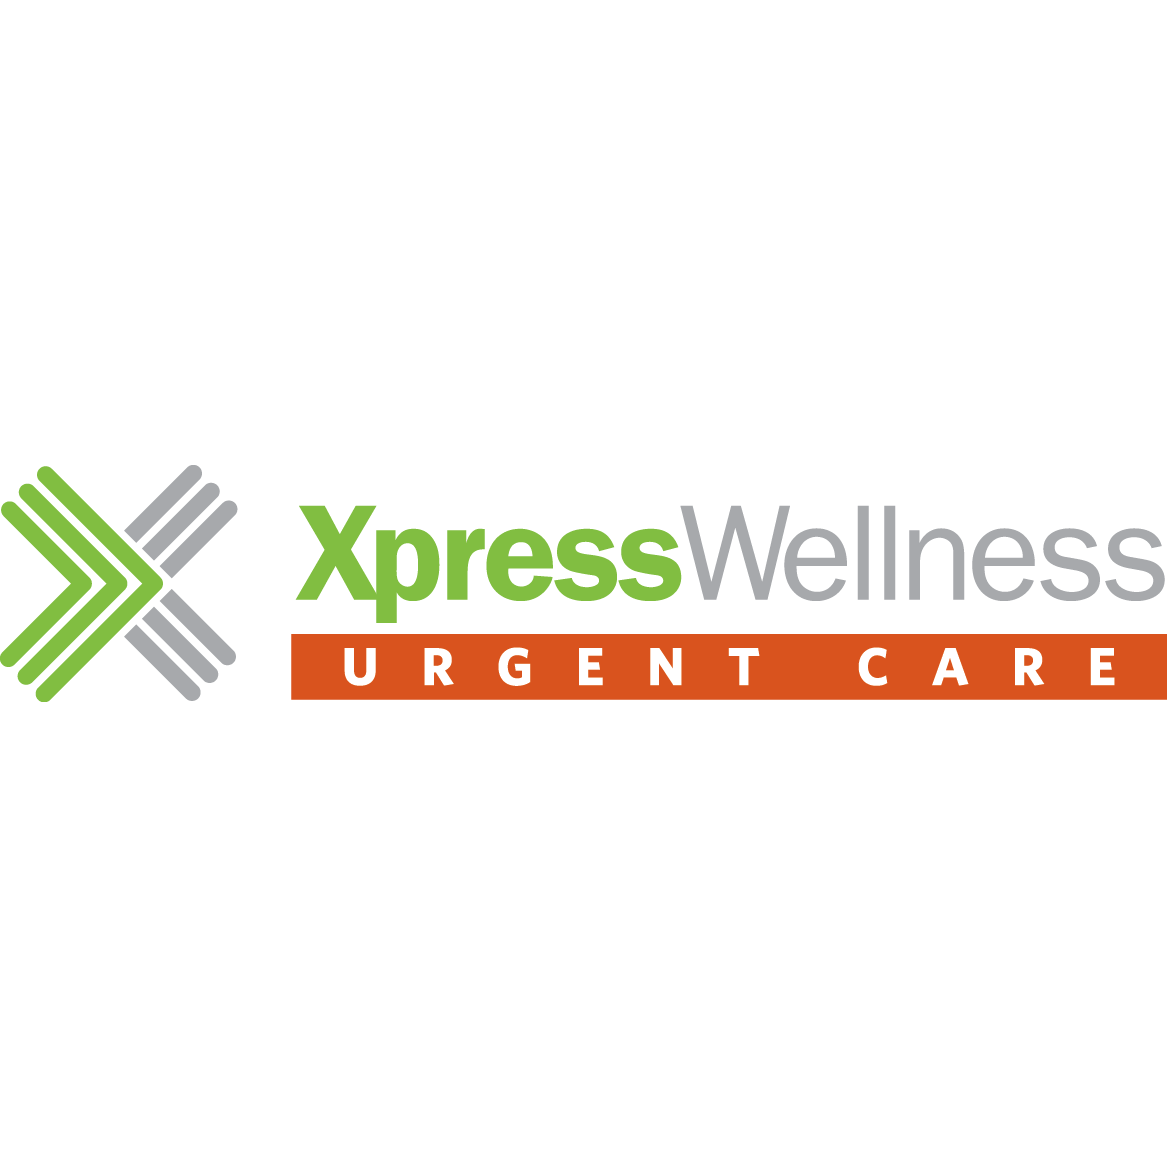 Xpress Wellness Urgent Care - Chickasha, OK 73018 - (316)733-9355 | ShowMeLocal.com